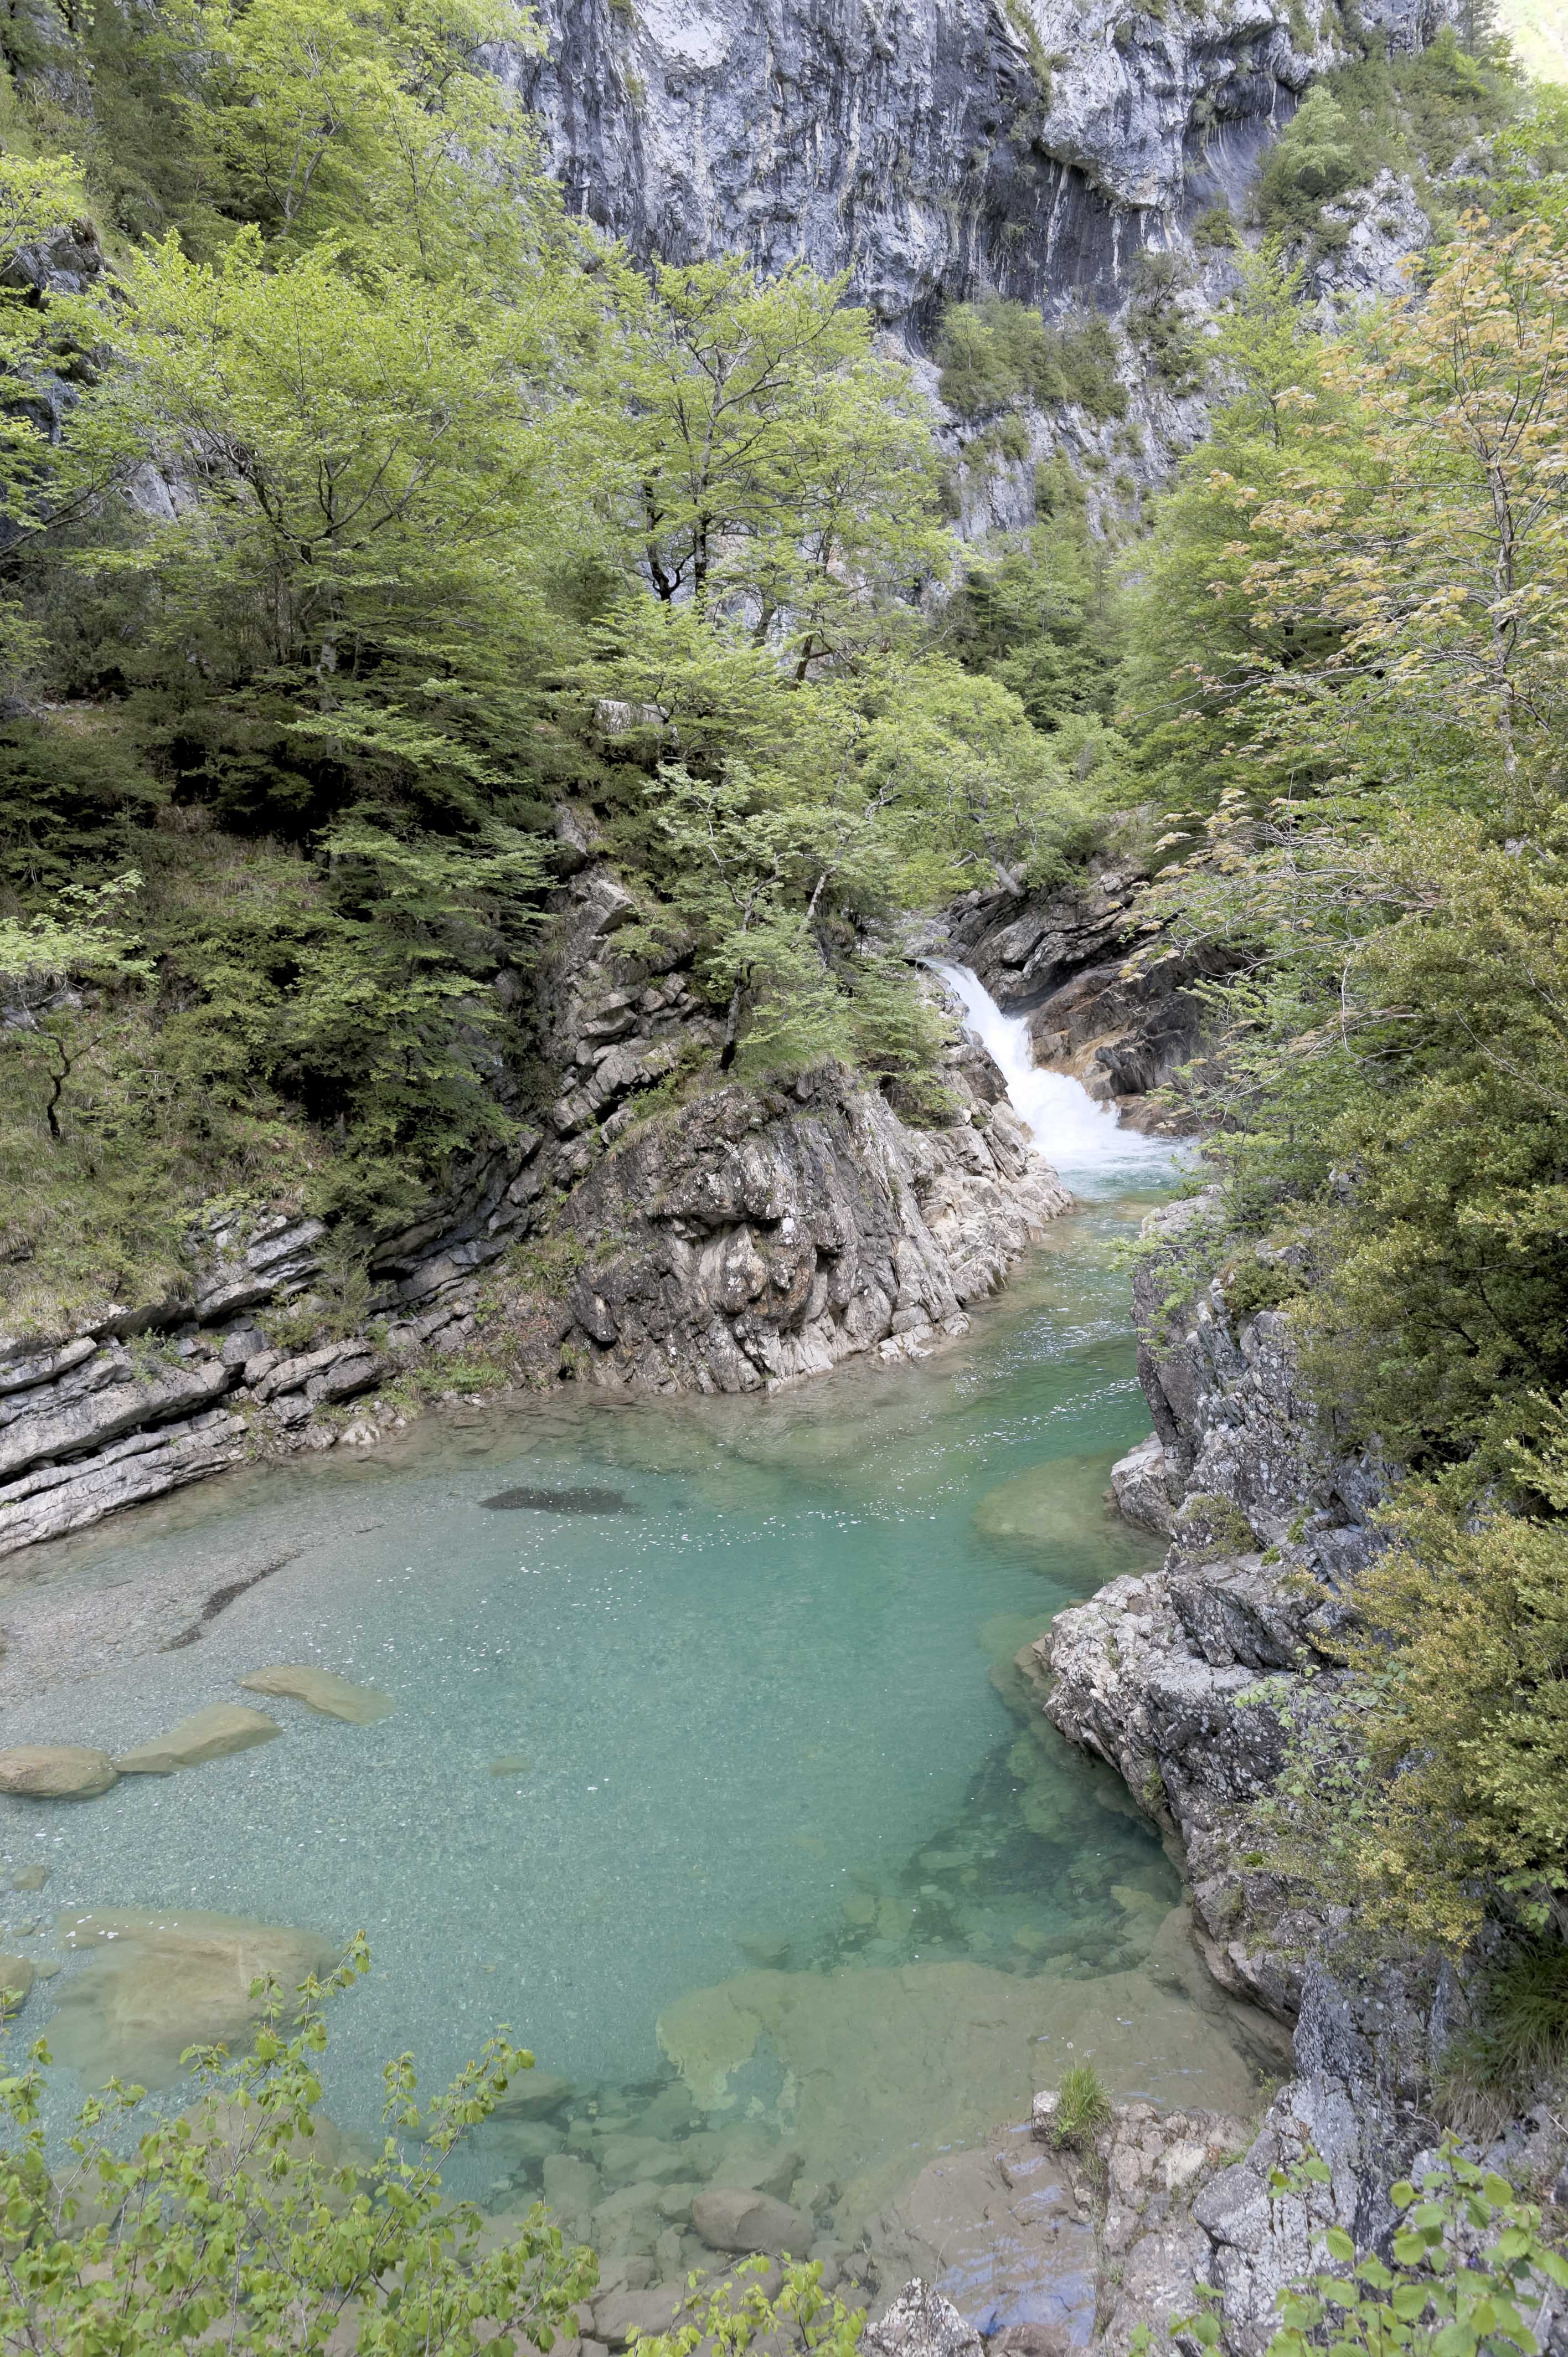 6551_Canyon d'Anisclo (Sobrarbe)